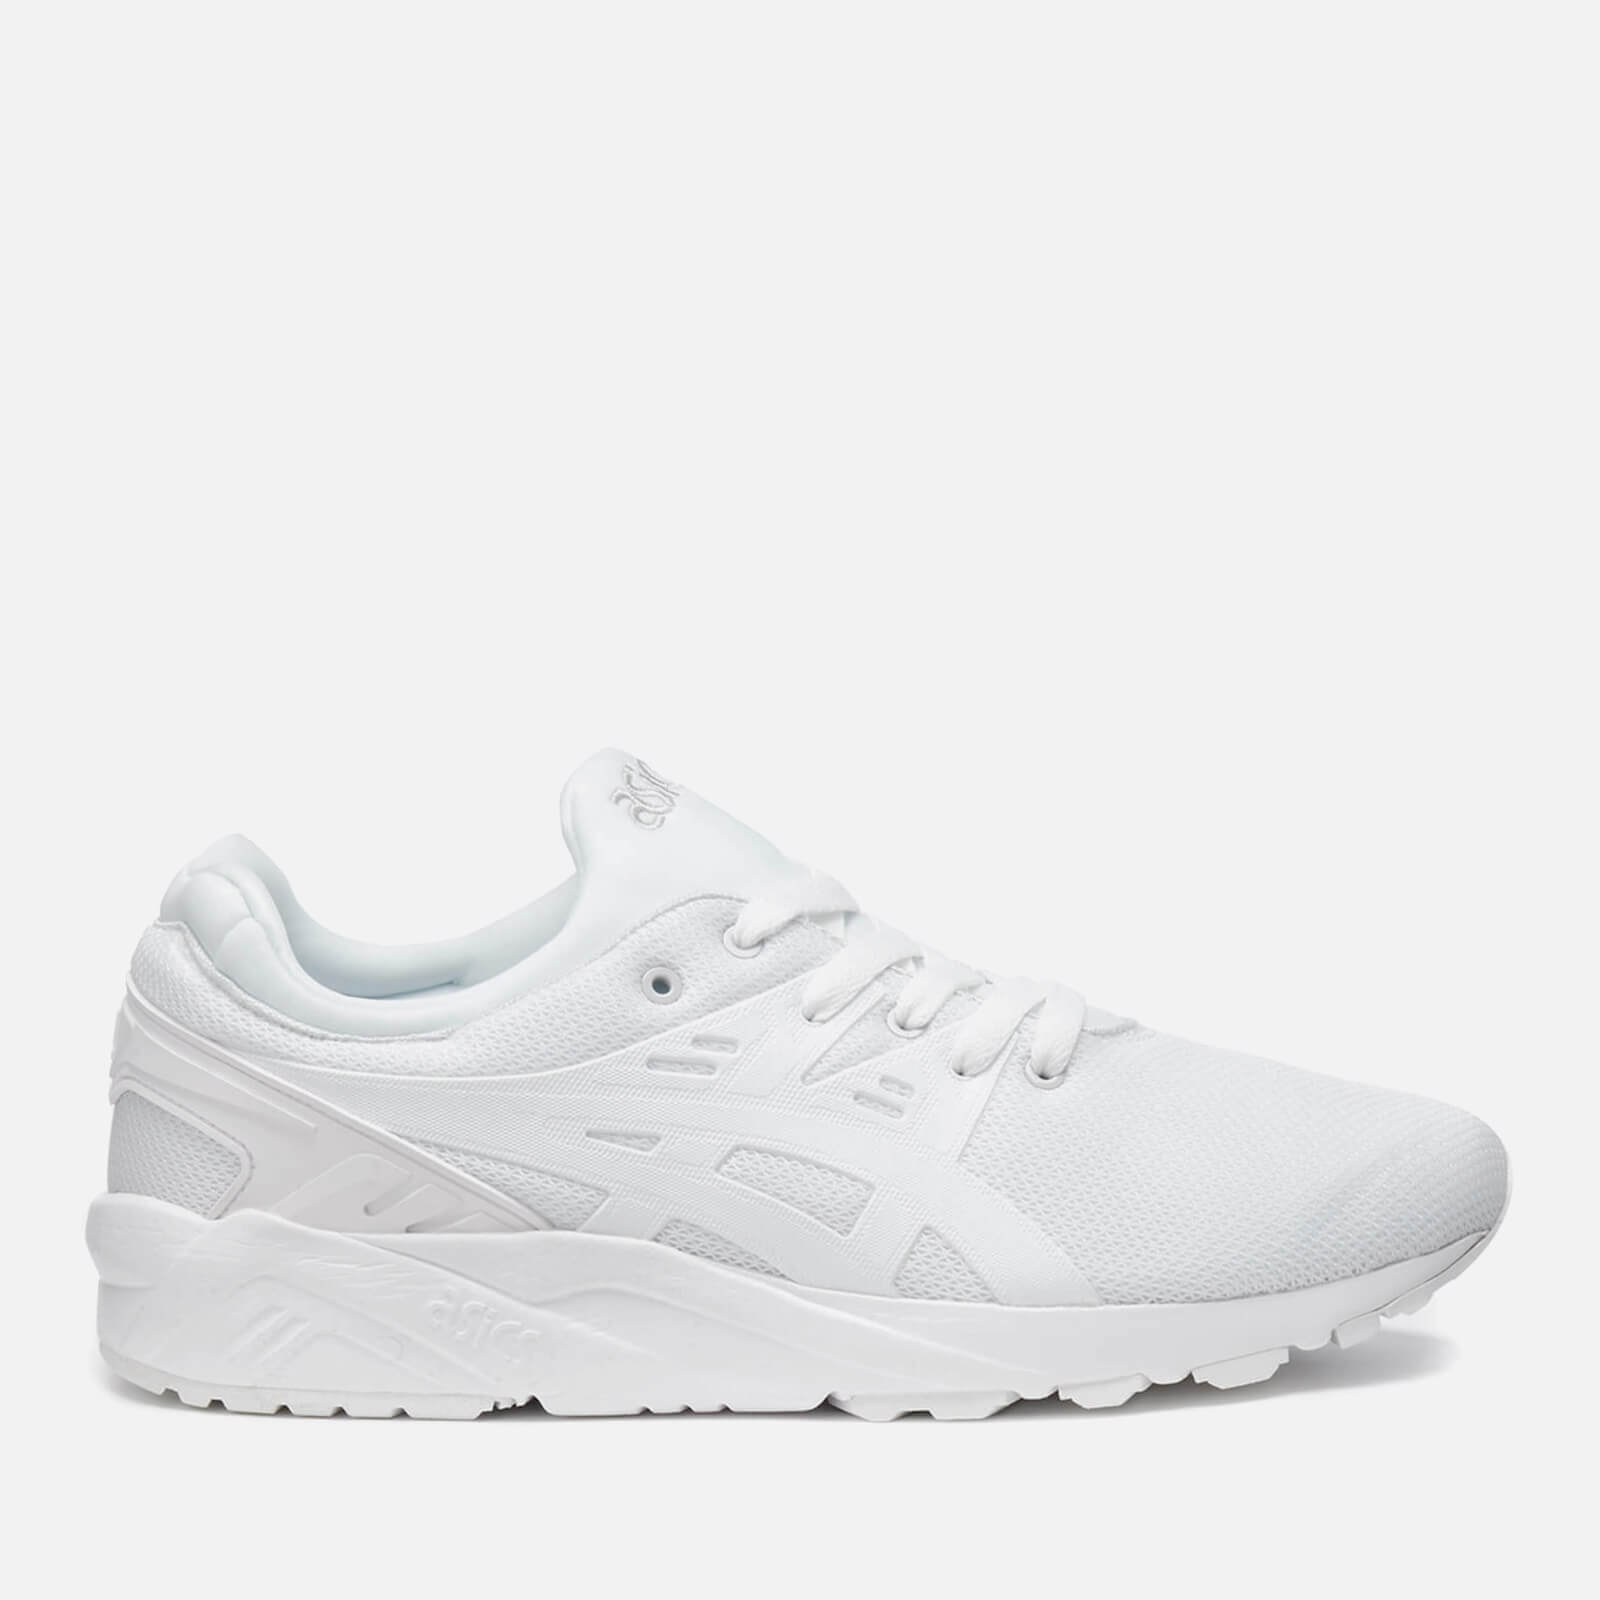 c255c35a1 Asics Lifestyle Gel-Kayano Evo Trainers - White - Free UK Delivery over £50